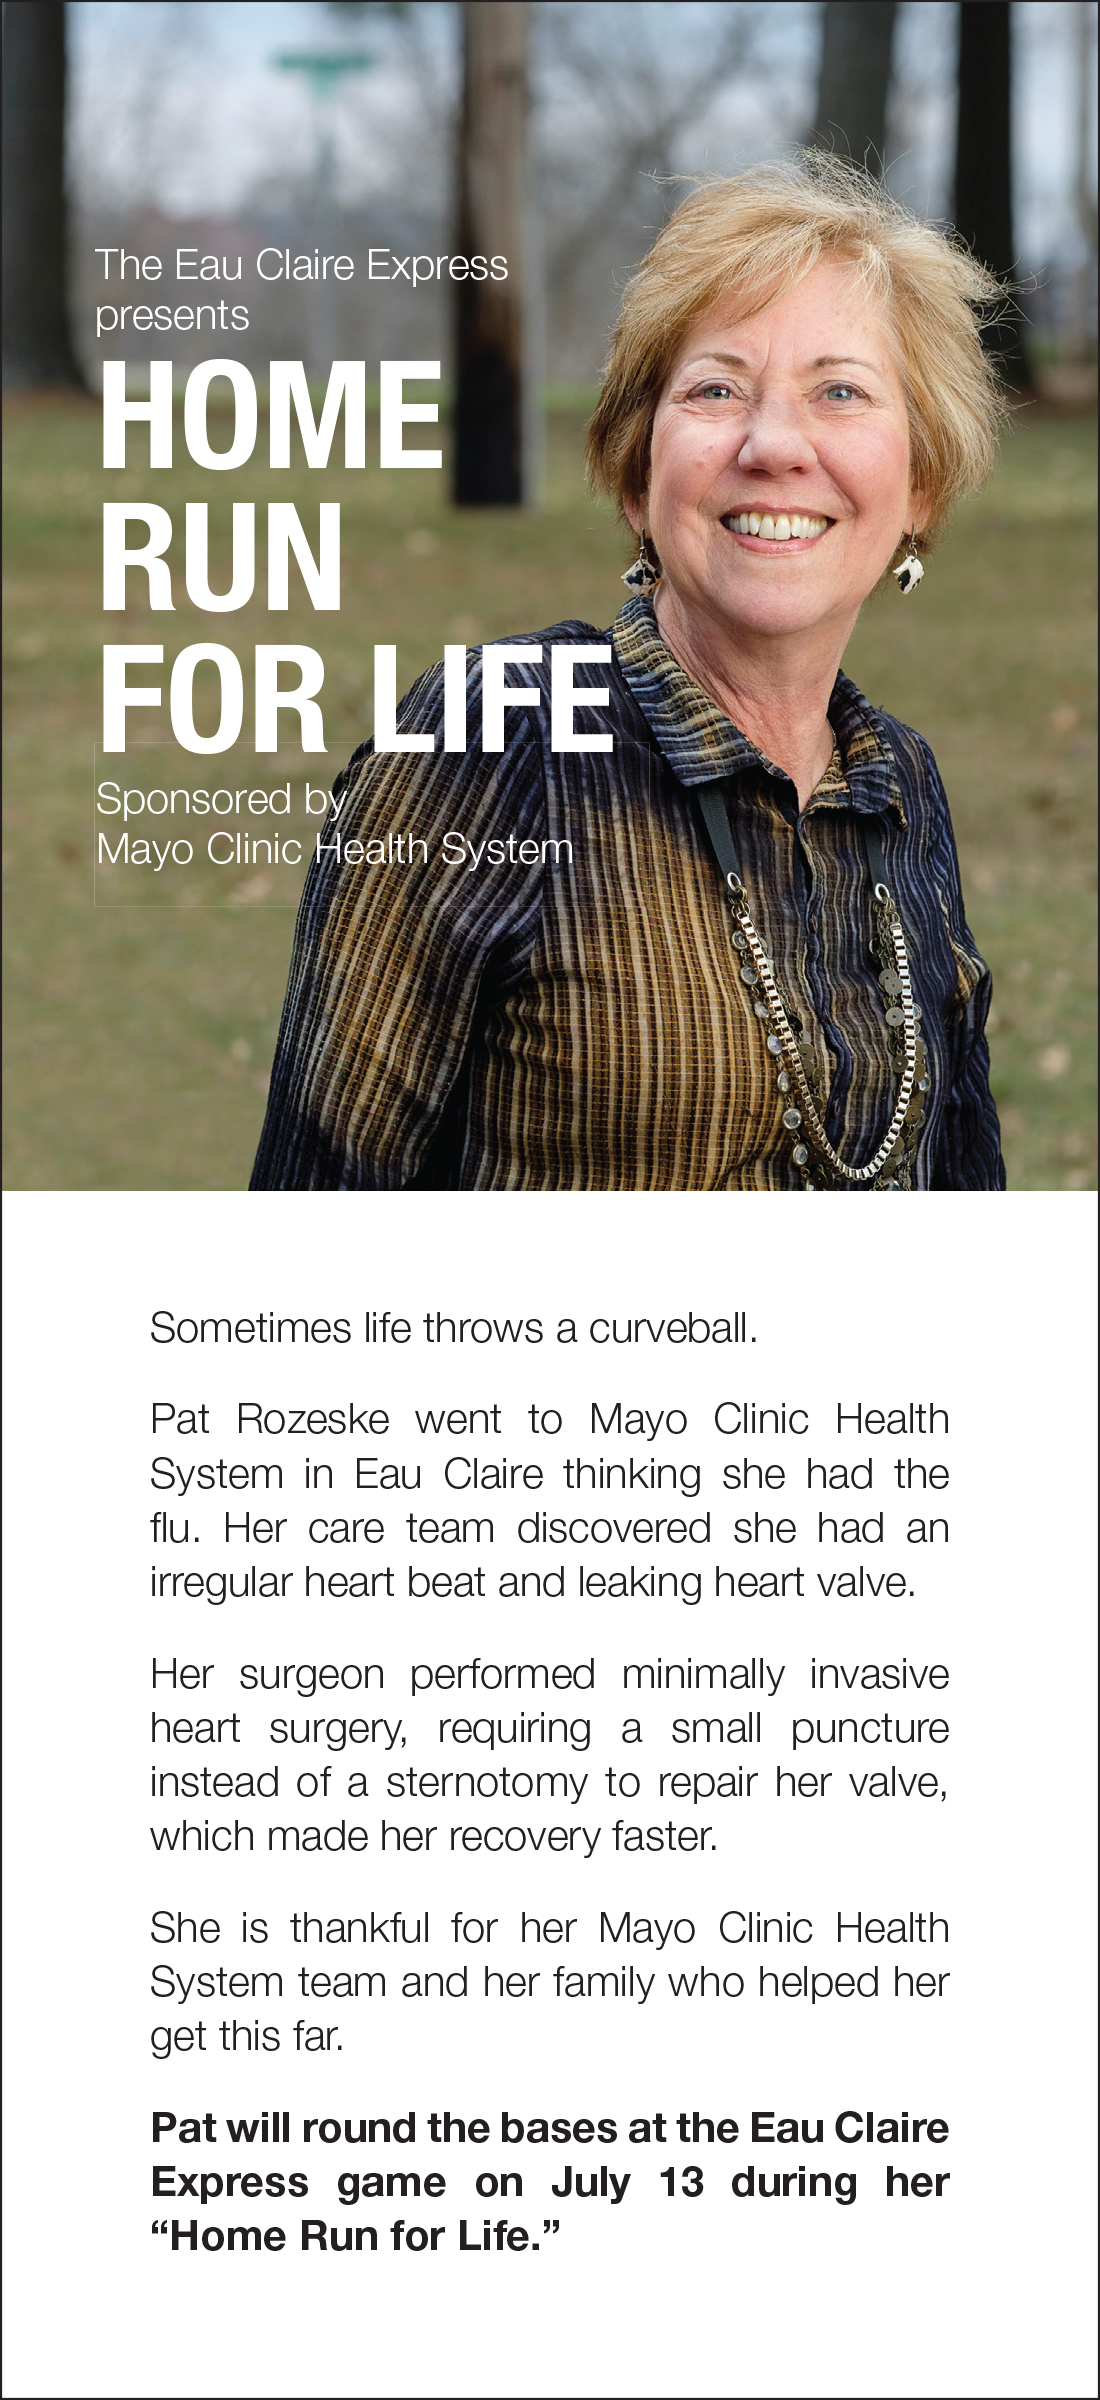 Home Run for Life | Presented by Mayo Clinic Health System - Eau